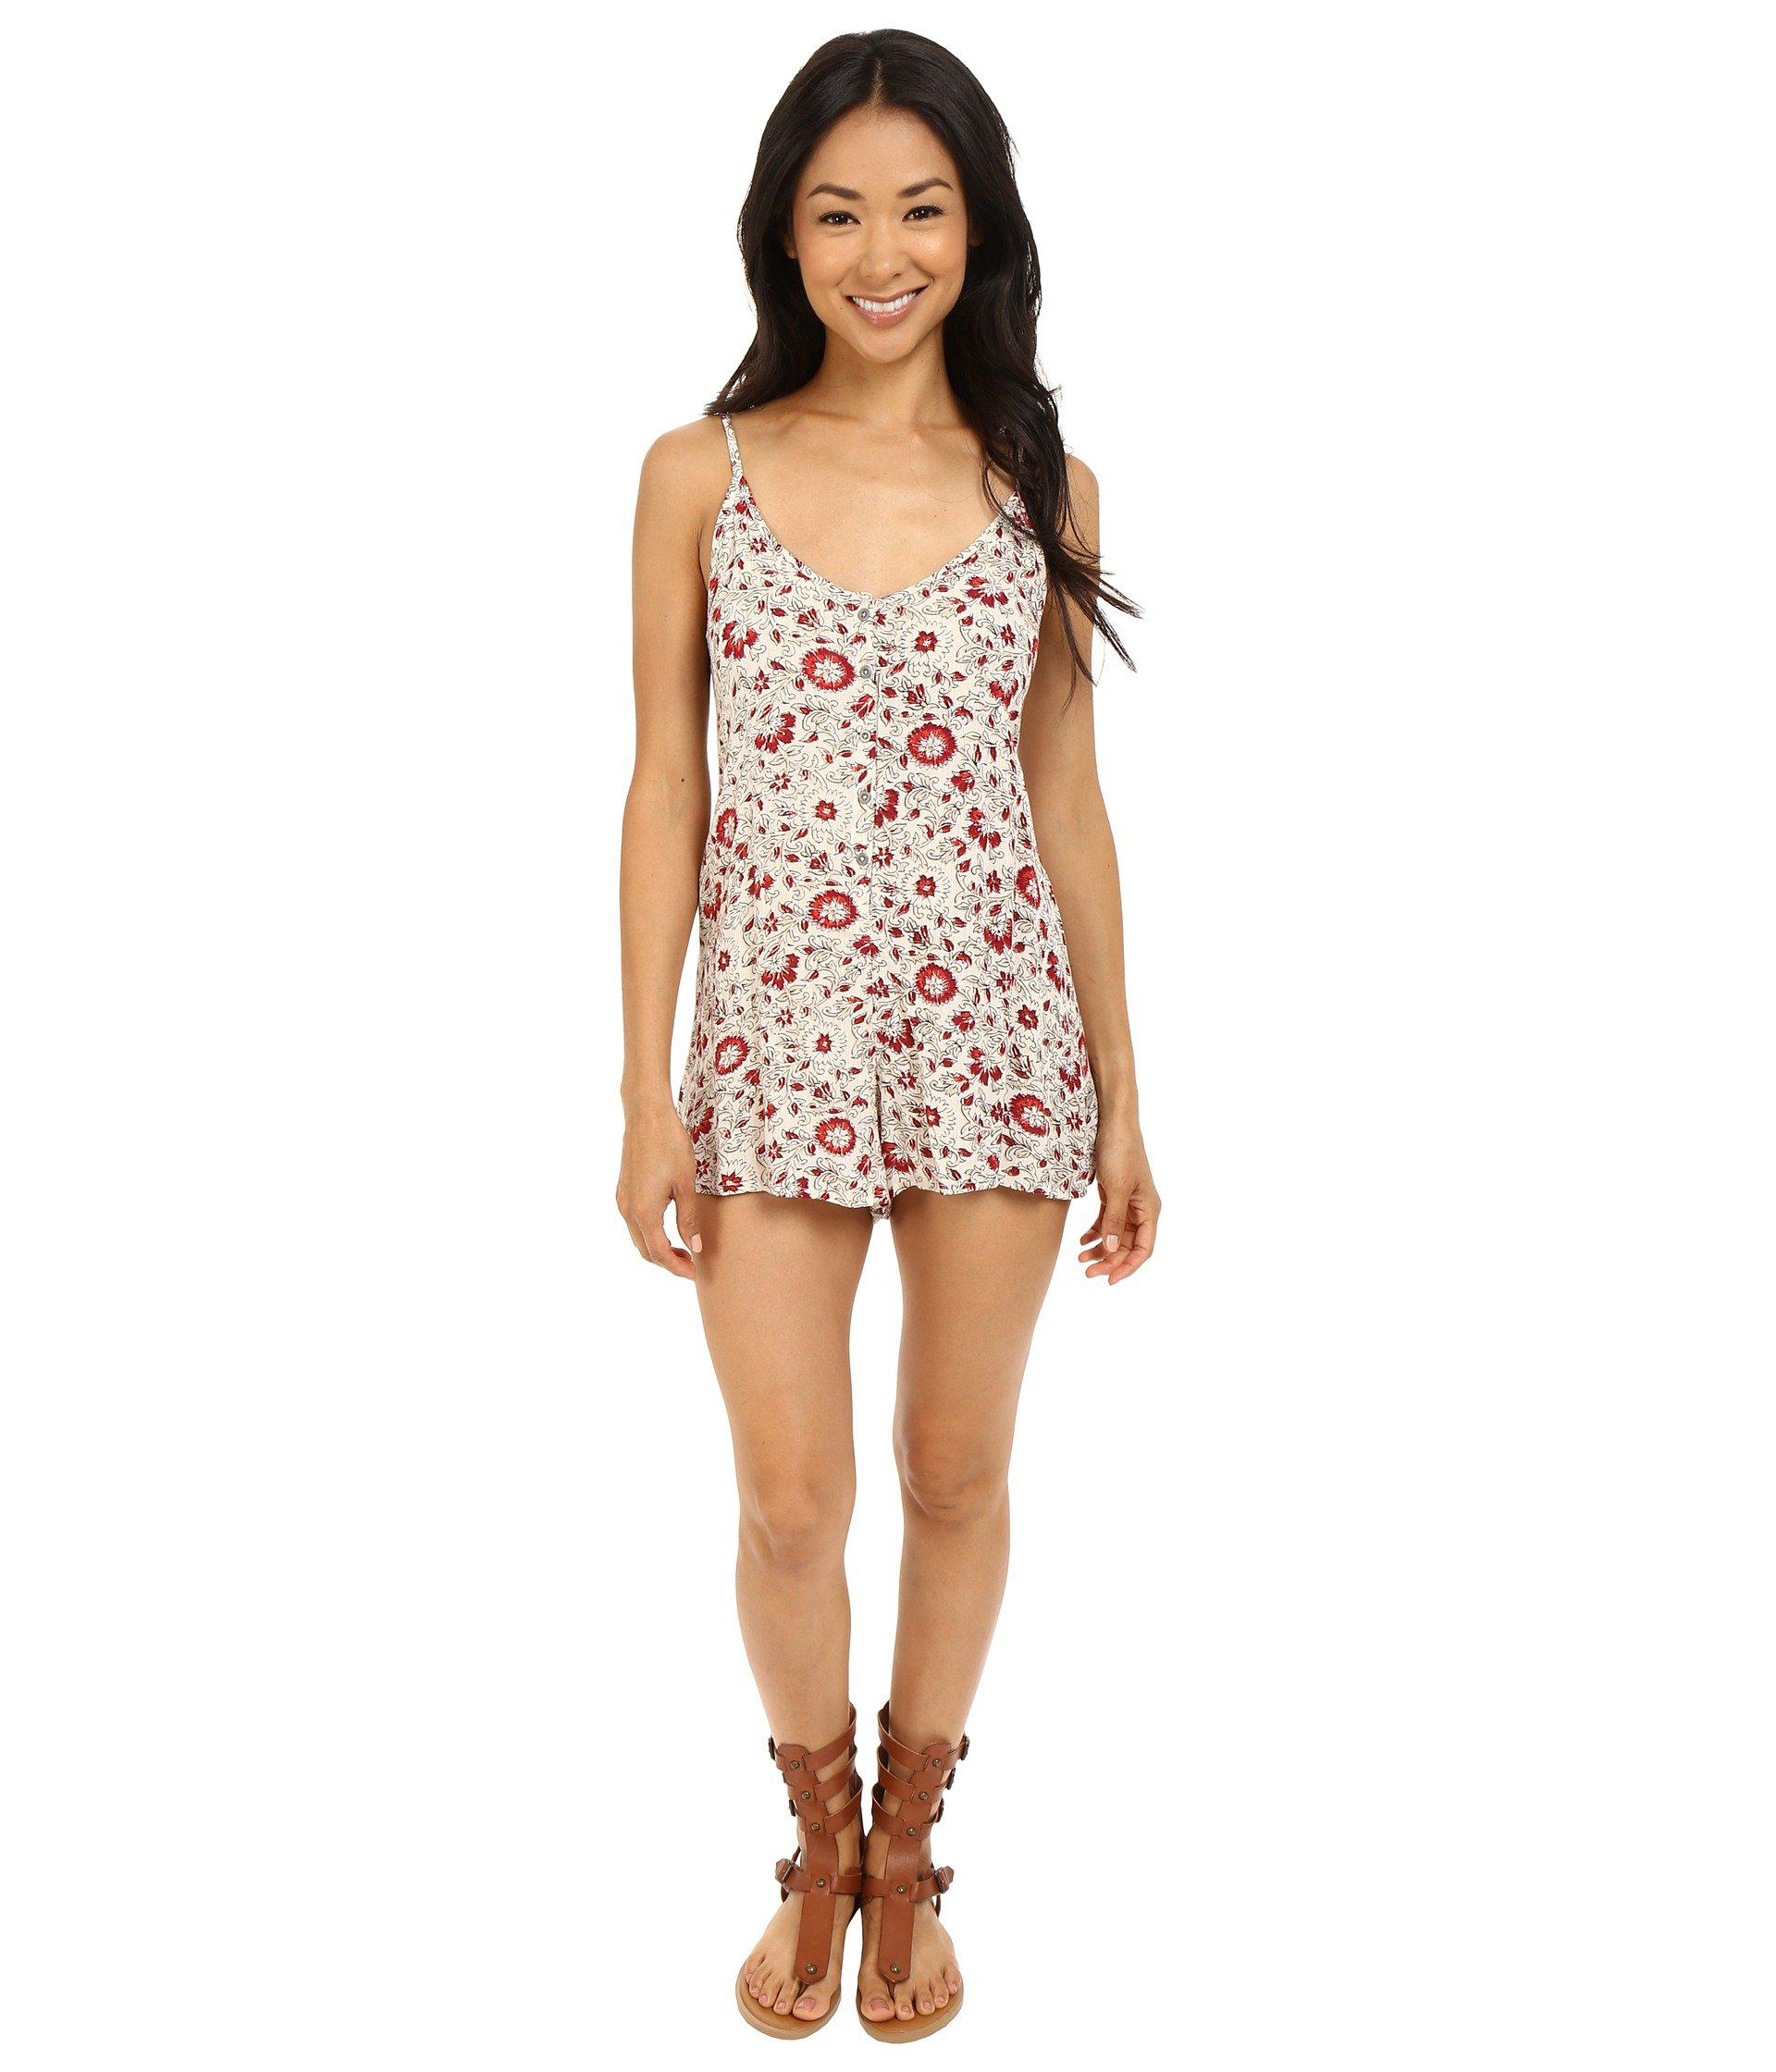 b19cd3f460c Lyst - Billabong Roaming Hearts Romper in White